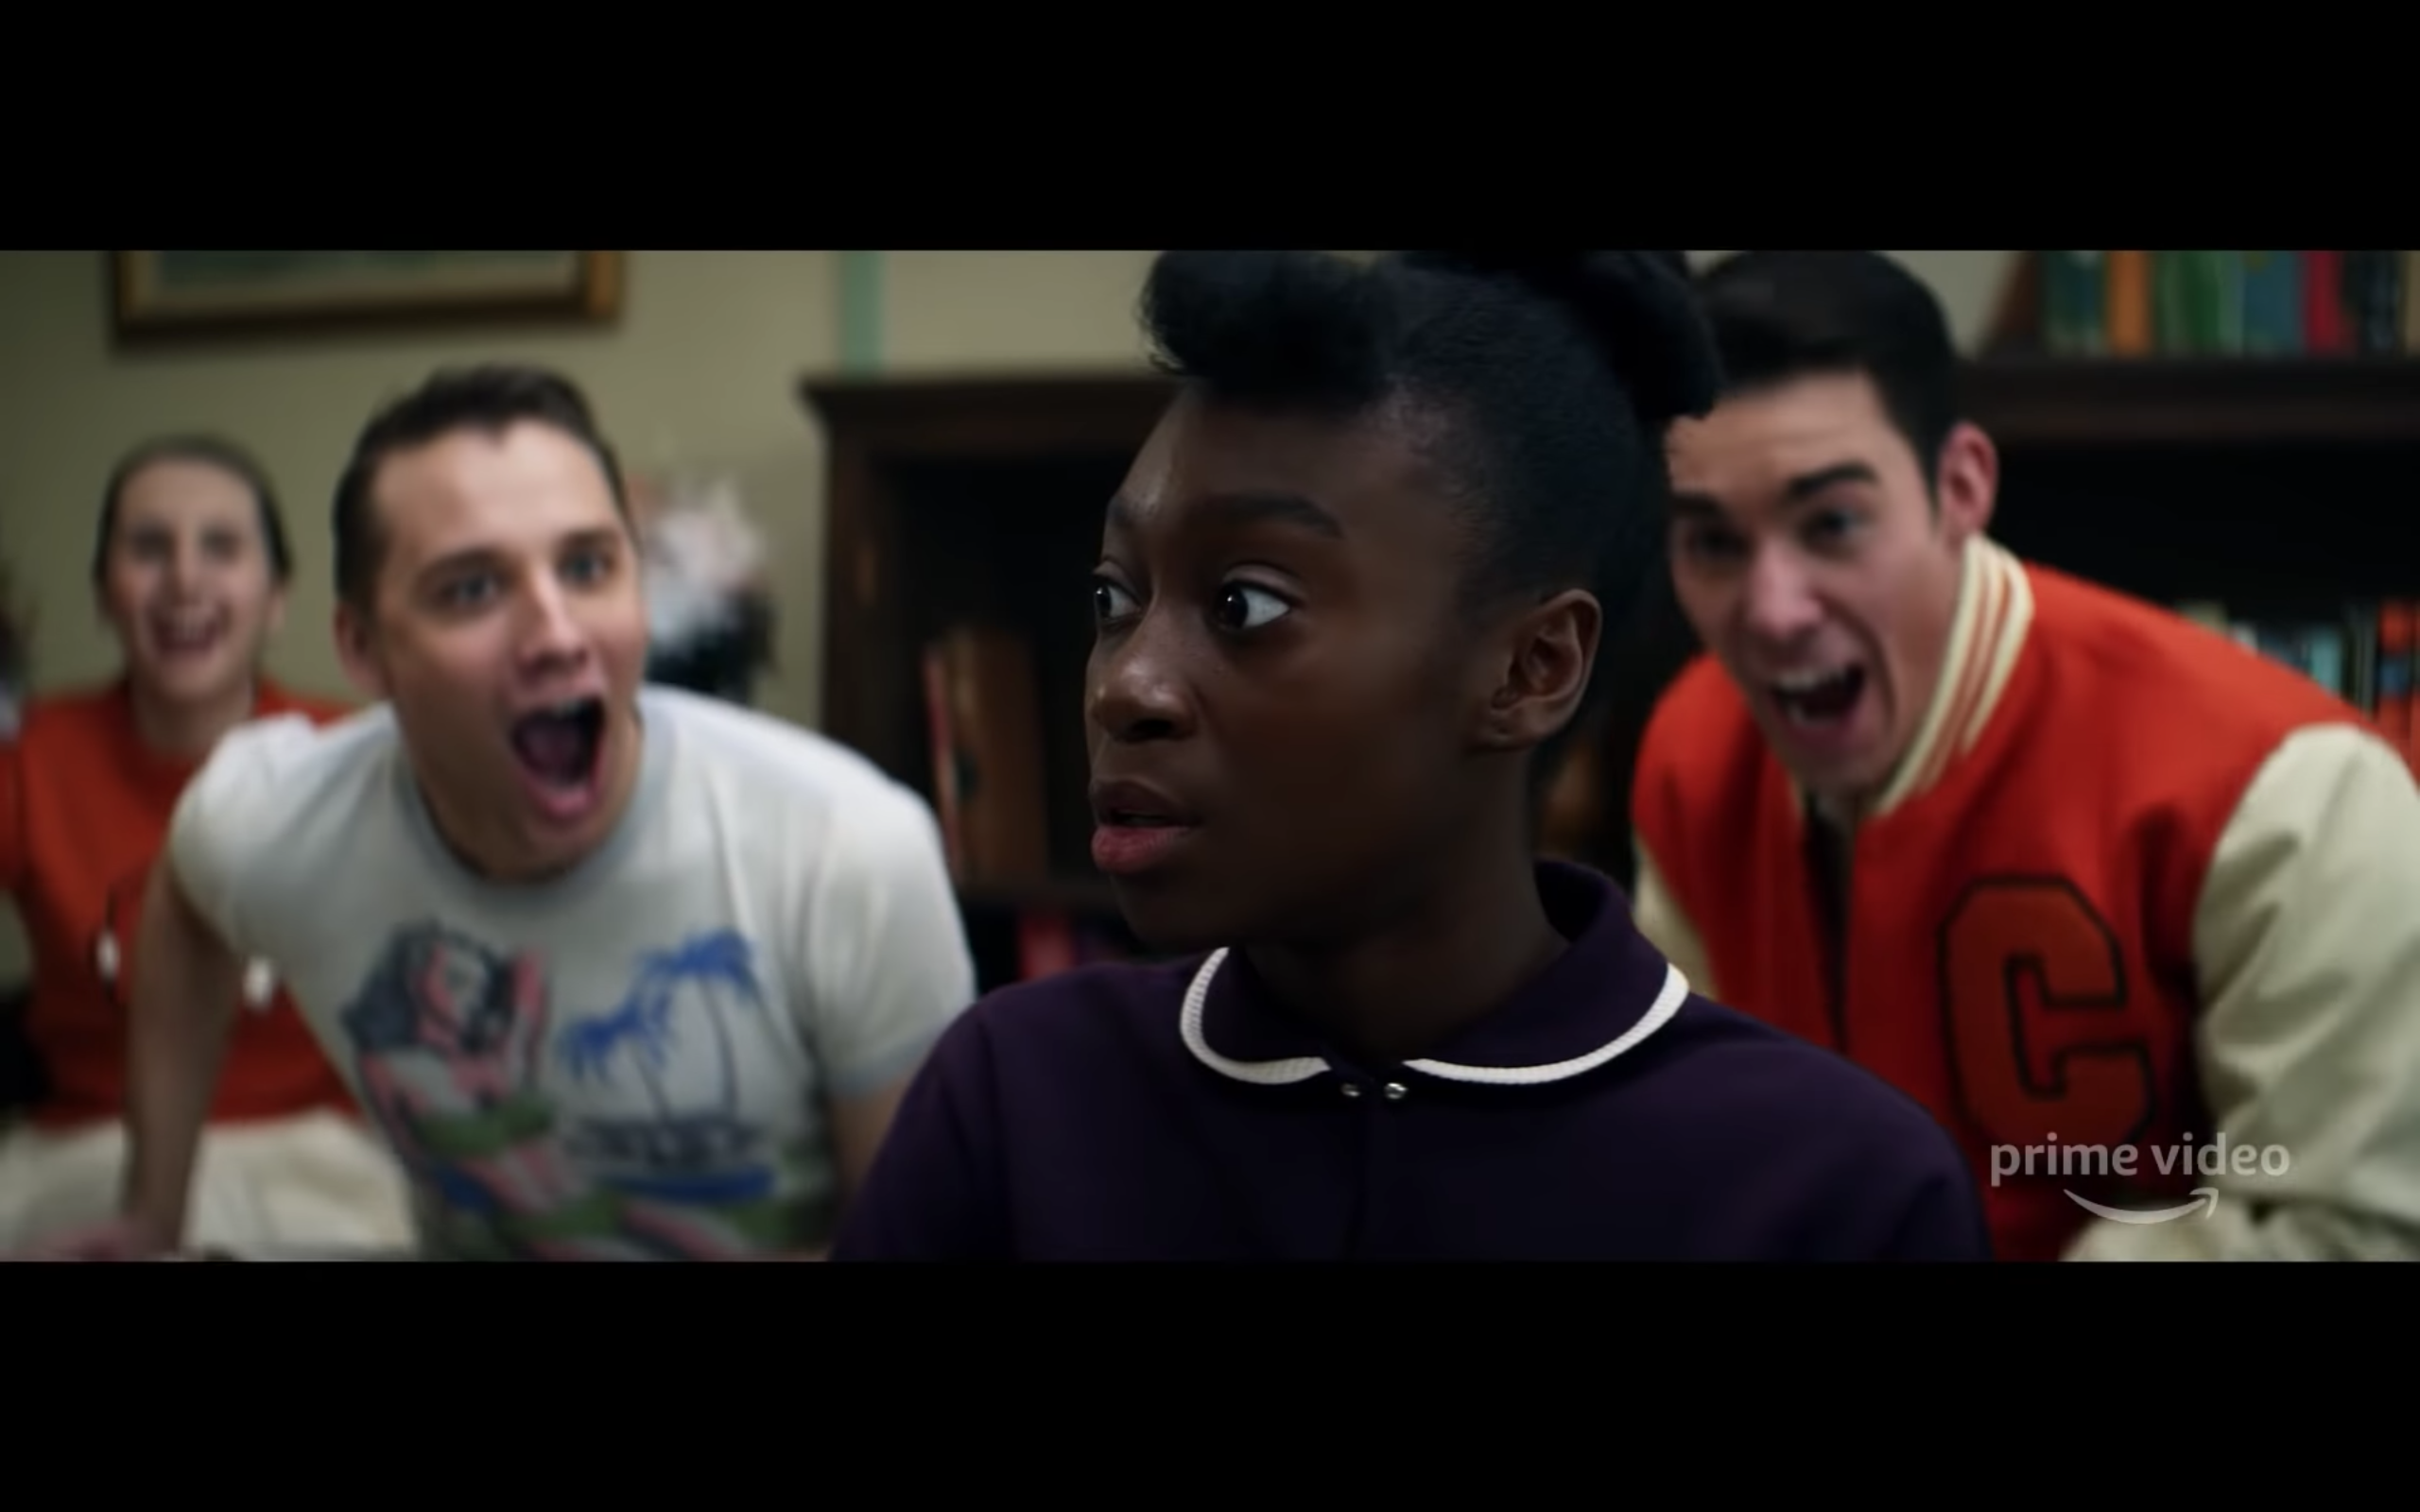 Shahadi Wright Joseph is openly mocked in class when answering a question from her teacher